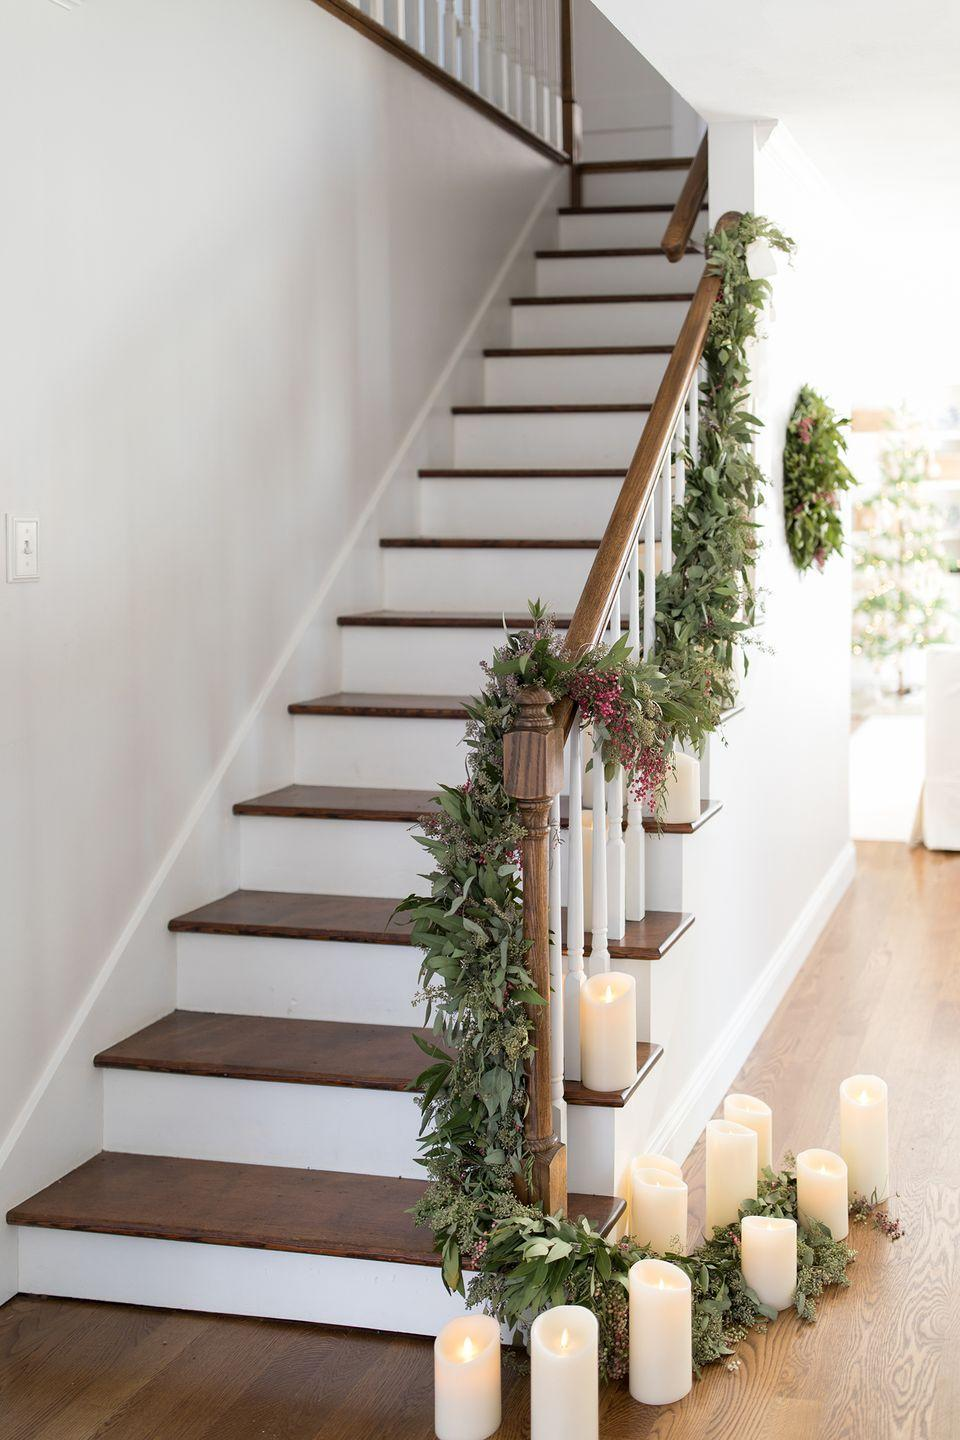 """<p>A warm, natural glow is impossible to resist with this relaxed holiday staircase look by <a href=""""https://julieblanner.com/"""" rel=""""nofollow noopener"""" target=""""_blank"""" data-ylk=""""slk:Julie Blanner"""" class=""""link rapid-noclick-resp"""">Julie Blanner</a>.</p>"""